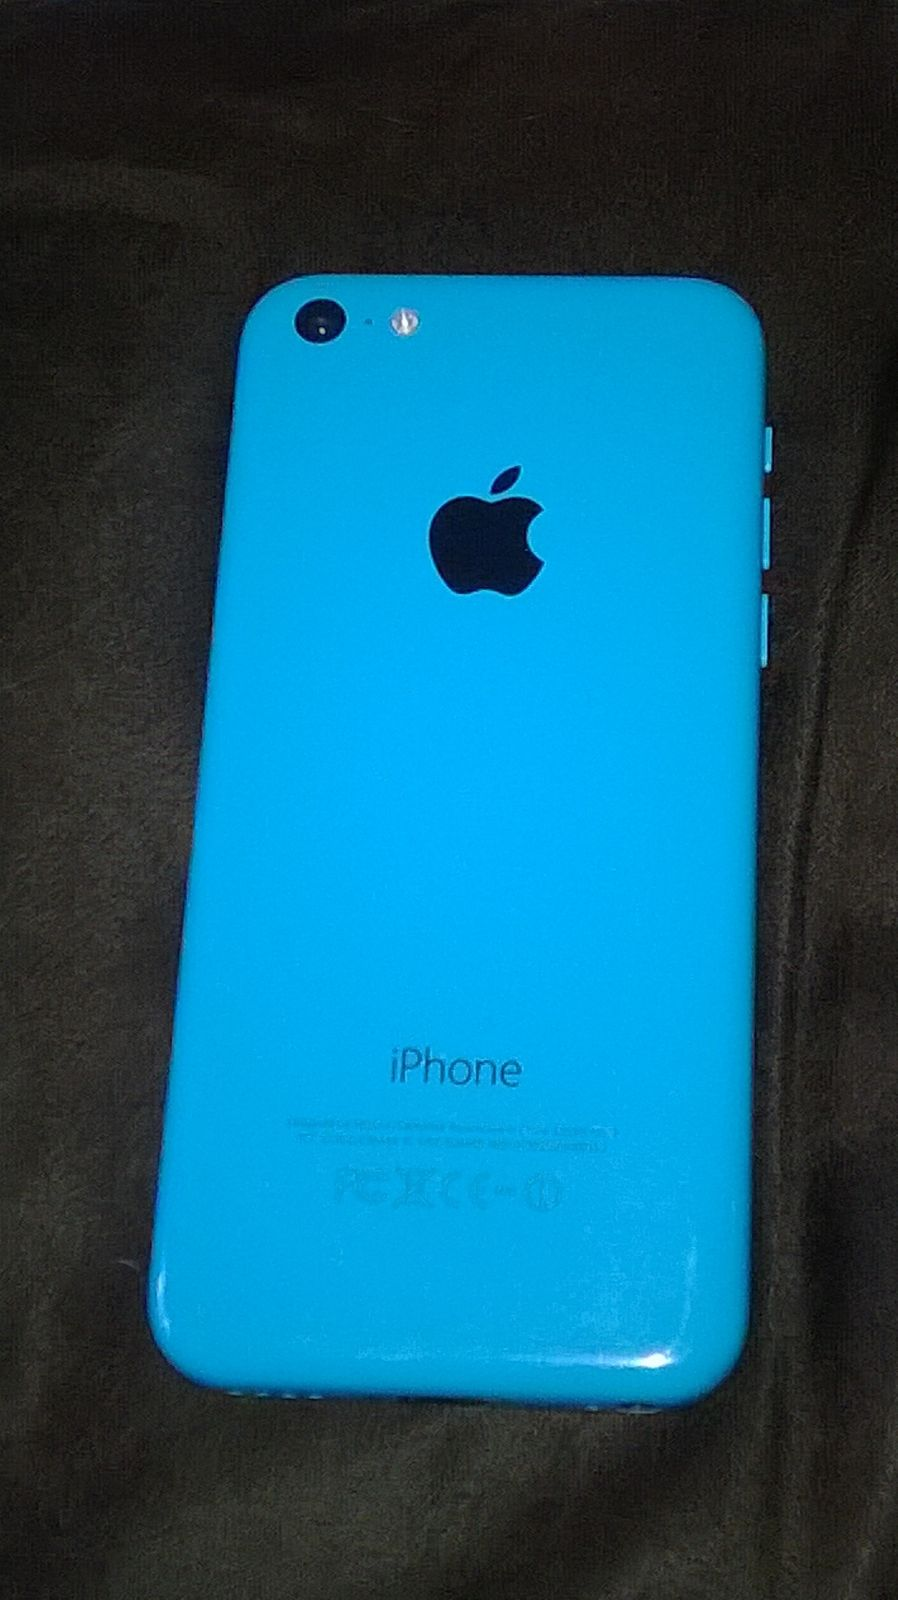 iphone 5c sale iphone 5c blue like new for us used sold sold sold 11131